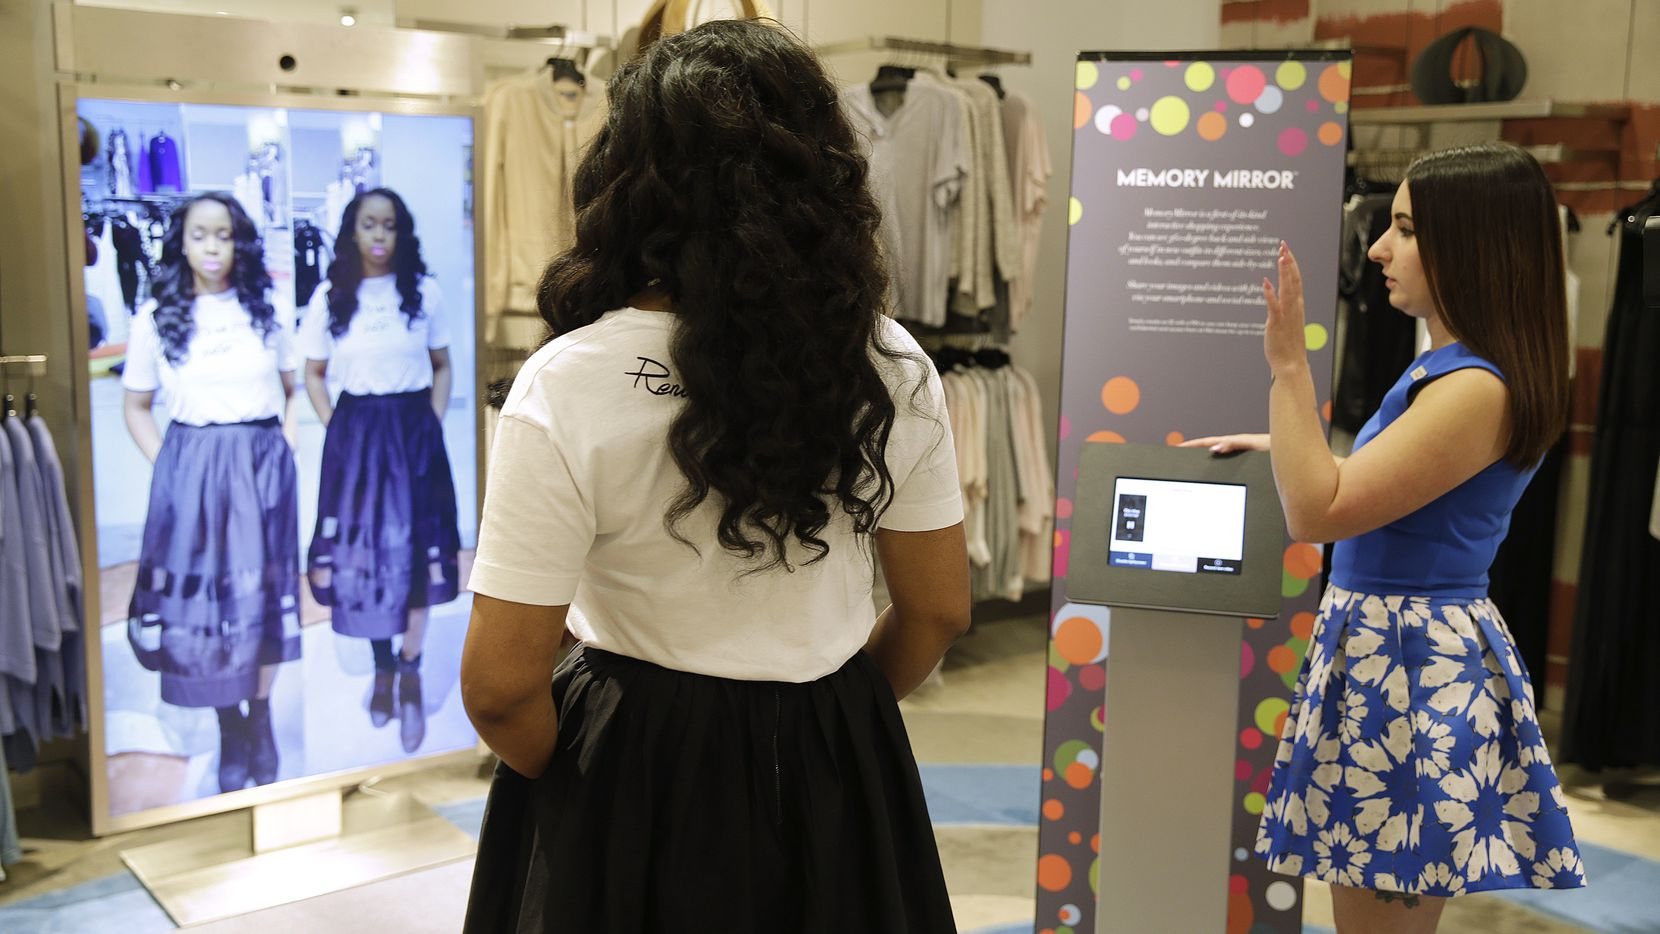 Sales manager Alysa Stefani, right, demonstrates the Memory Mirror for co-worker Porsche Colbert at the Neiman Marcus store in San Francisco's Union Square. The mirror is outfitted with sensors, setting off motion-triggered changes of clothing. The mirror also doubles as a video camera, capturing a 360-degree view of what an outfit looks like and making side-by-side comparisons.